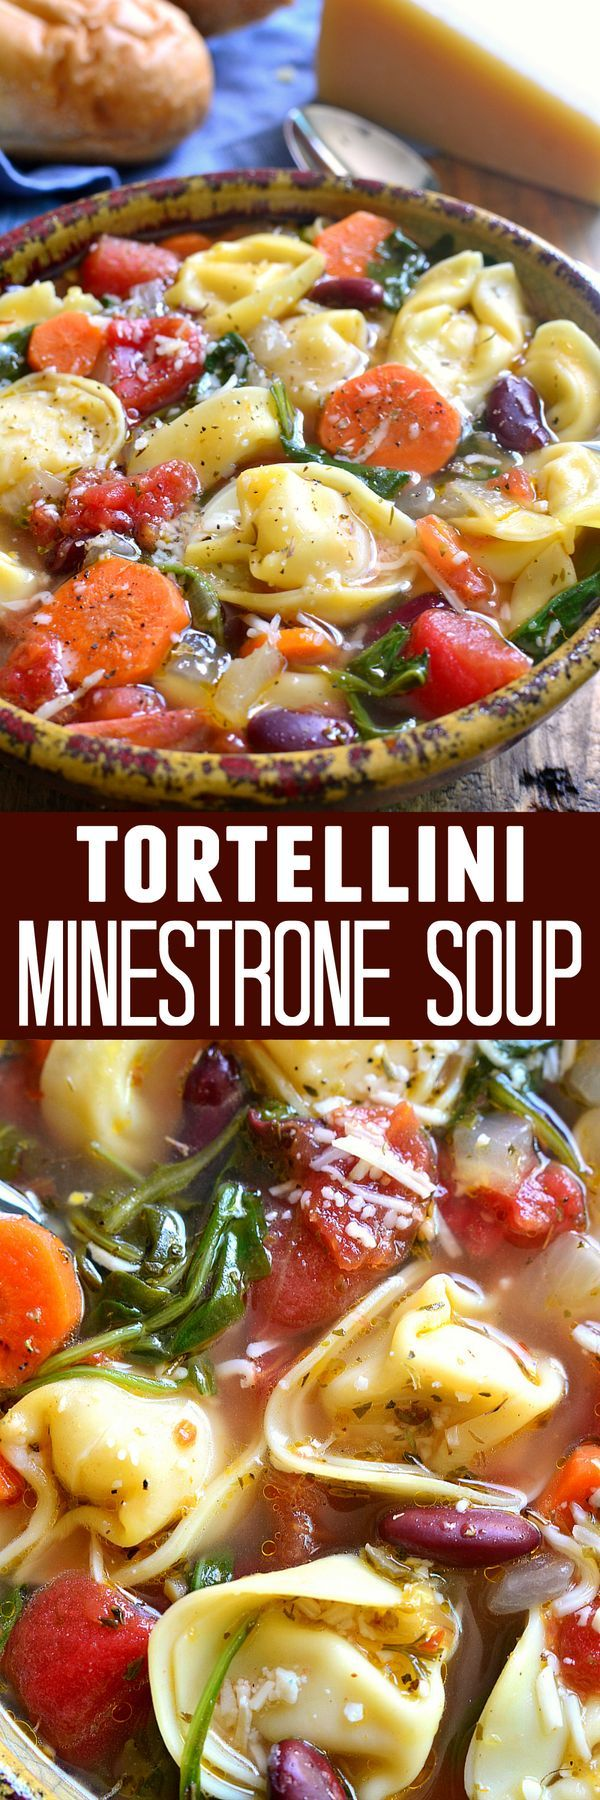 1 1/2 cup Baby arugula. 2 Carrots, medium thin. 2 cloves Garlic. 1 can Kidney beans. 1 Sweet onion, Medium. 1 can Tomatoes with basil. 6 cup Chicken broth, low-sodium. 1 pkg. Refrigerated 3-cheese tortellini pasta. 1/8 tsp Black pepper. 1/2 tsp Kosher salt. 1/8 tsp Red pepper flakes, cracked. 3 tbsp Olive oil, Extra Virgin. 1/4 cup Parmesan cheese.